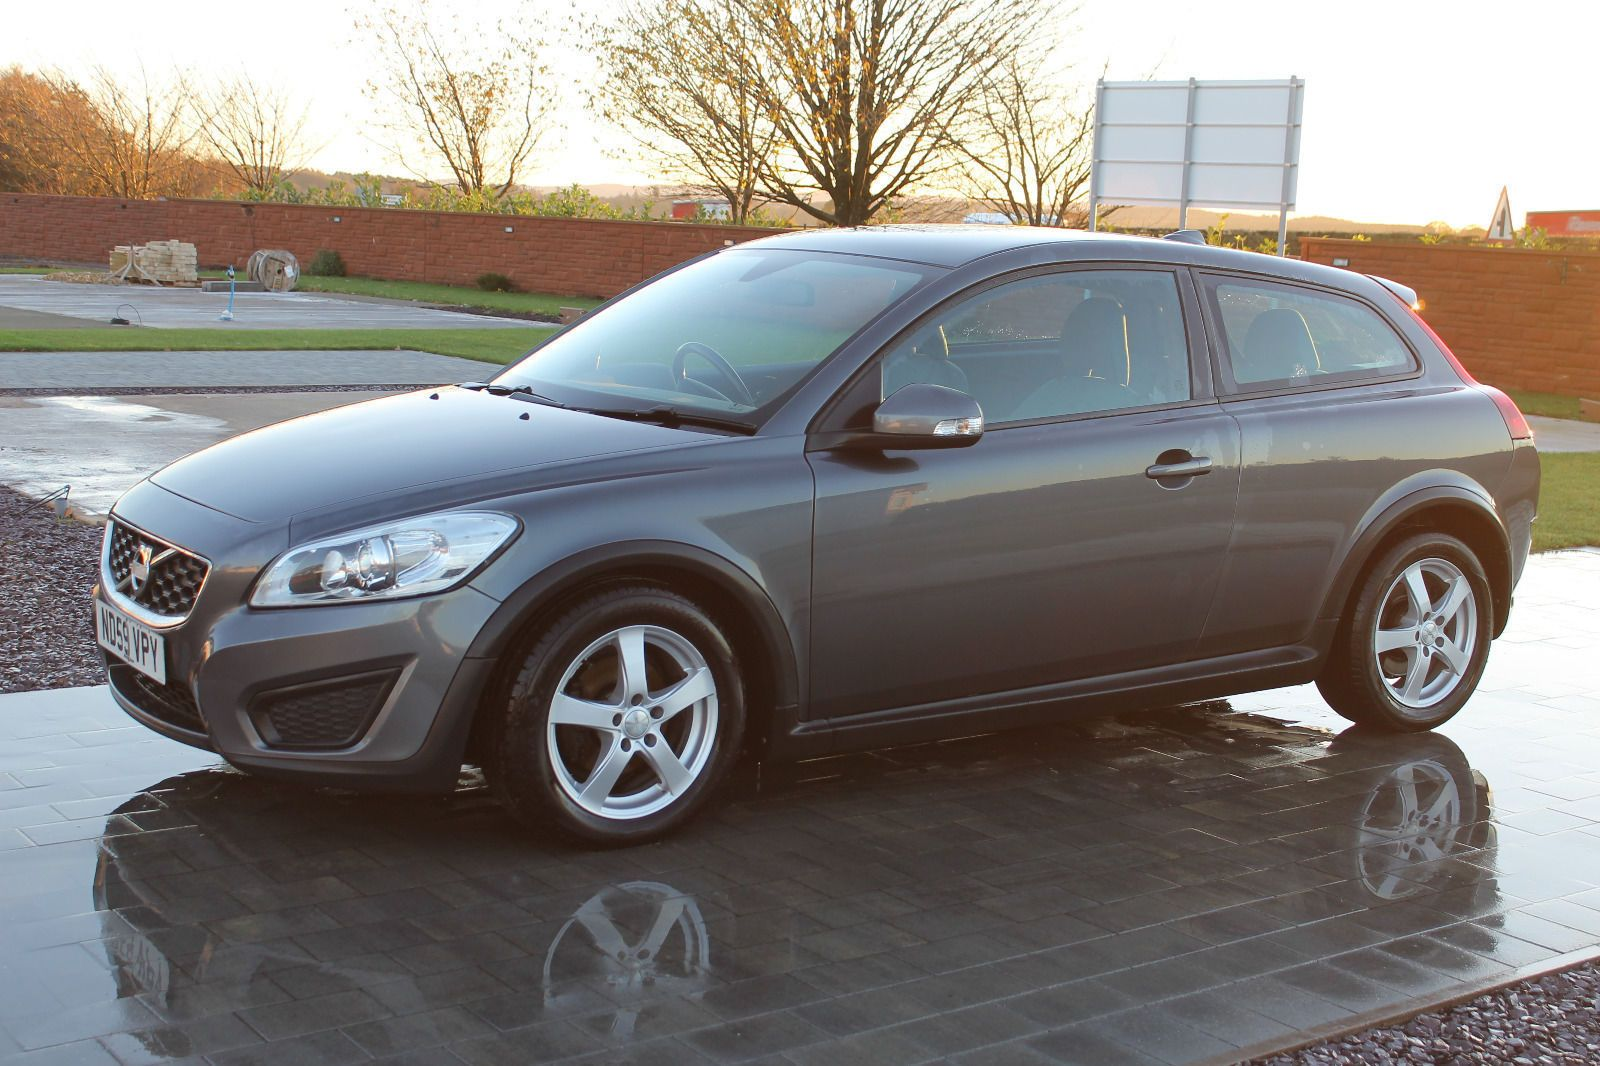 Volvo c30 1.6d SALVAGE DAMAGED REPAIR | Volvo c30, Volvo and Salvage